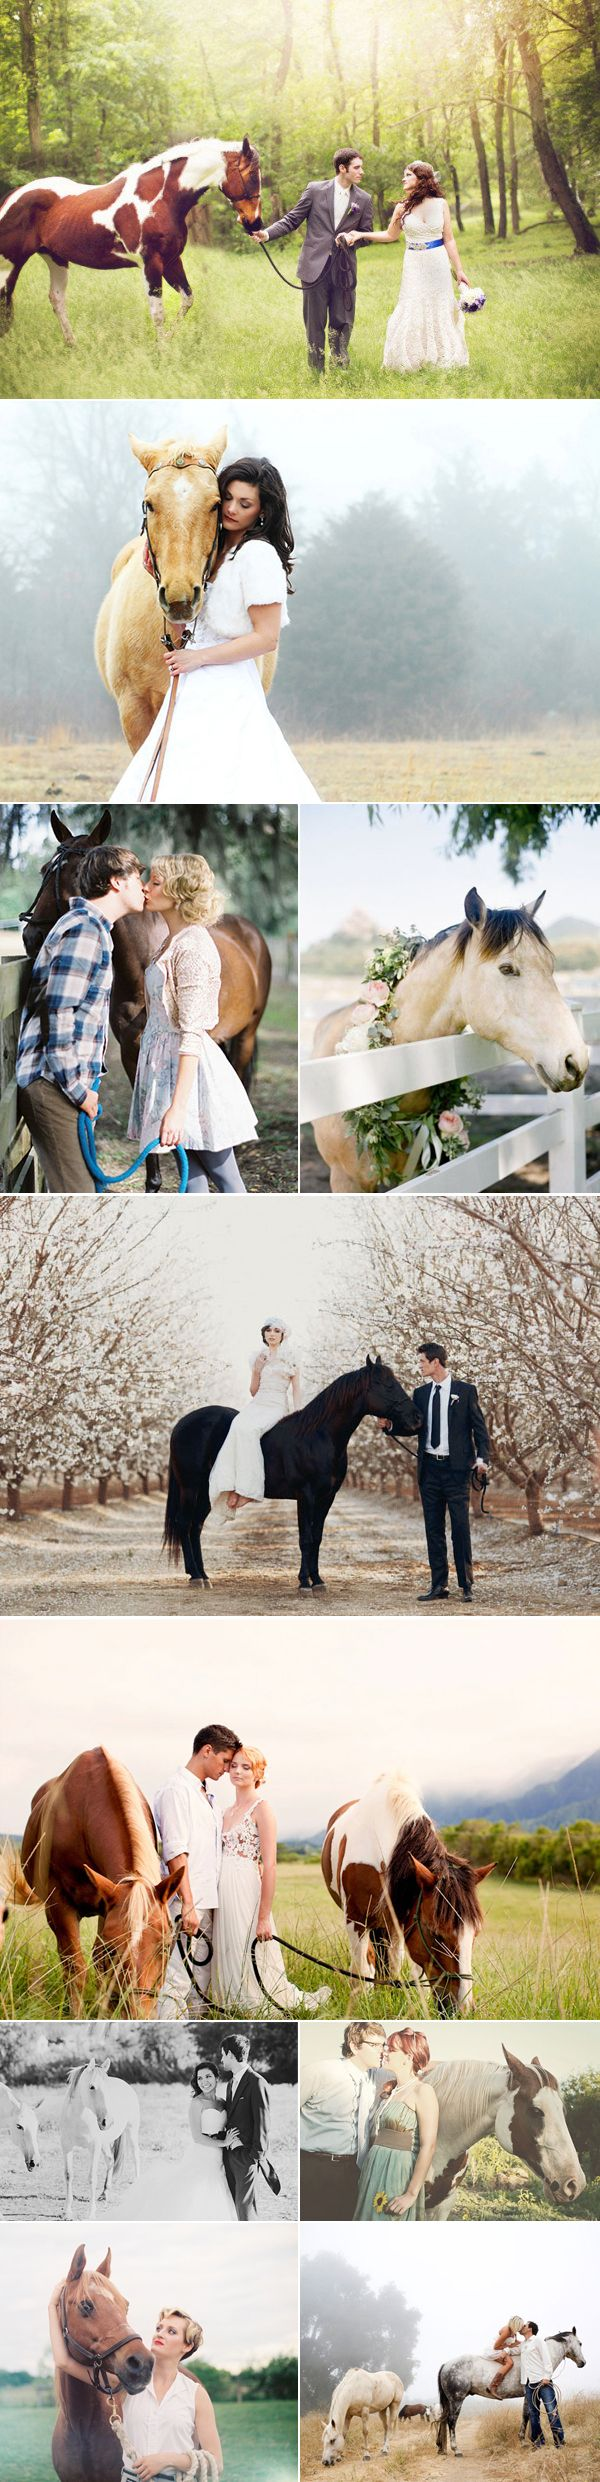 I like the first one, except with positions reversed for me and Eric. I also like the one with the horse grazing, and the couple beside him. I think we could recreate that one with Cassie! She loves to eat!